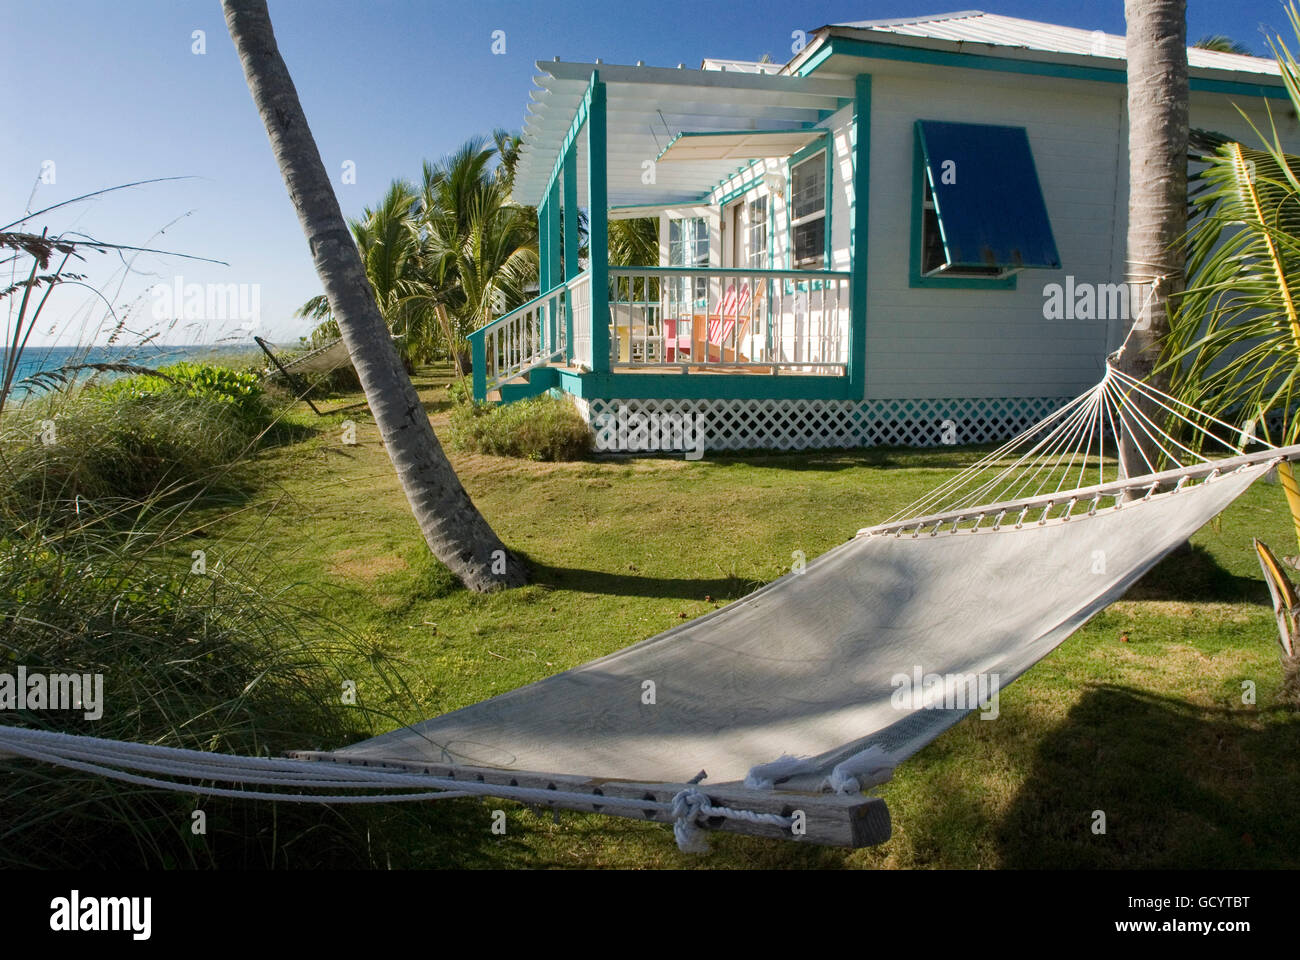 Typical loyalist house, Hope Town, Elbow Cay, Abacos. Bahamas - Stock Image